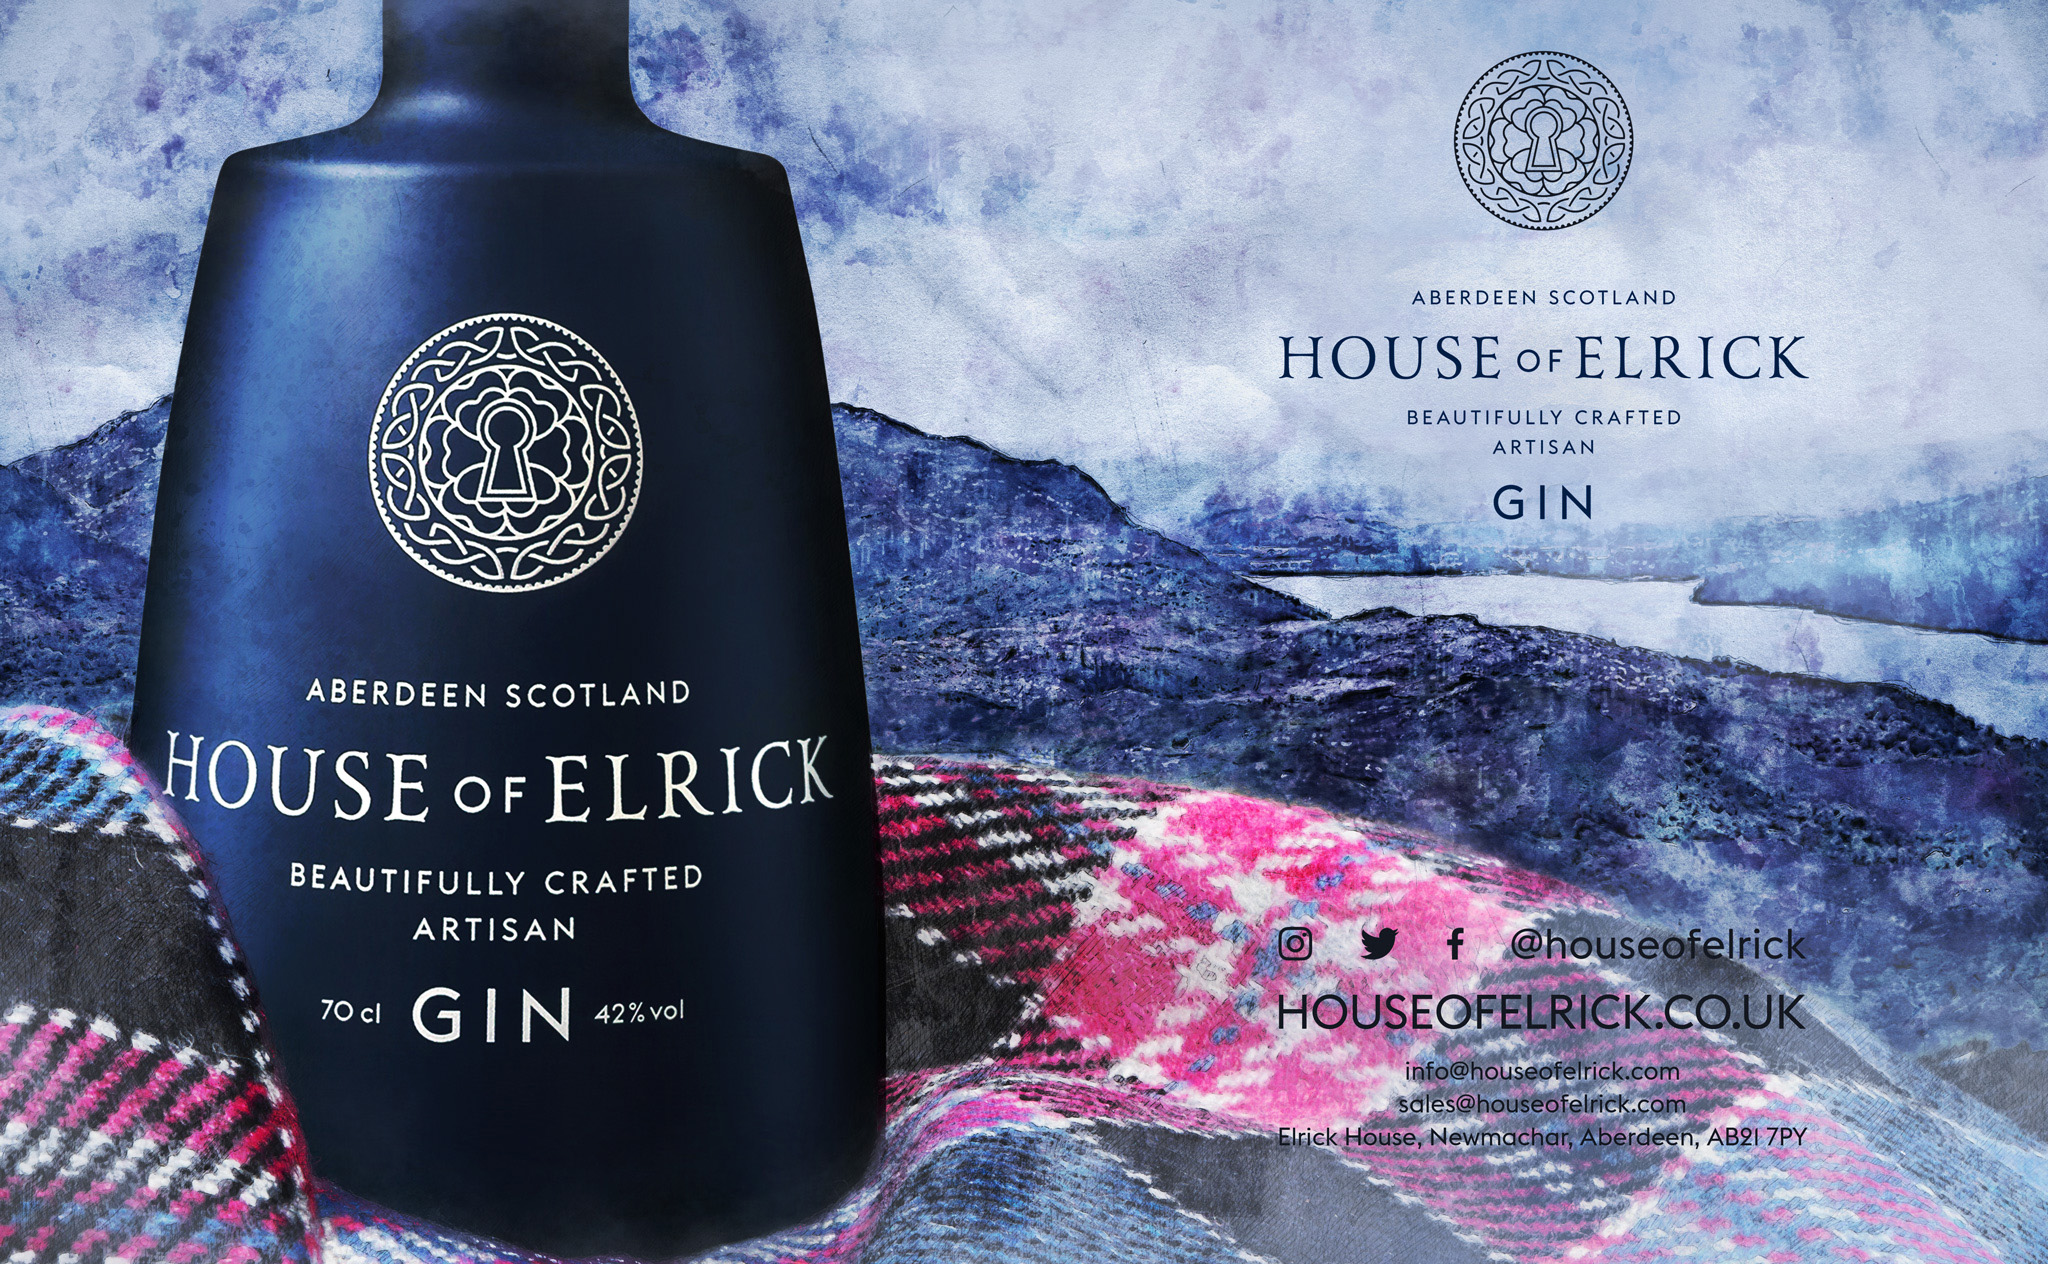 Double page spread advert created for House of Elrick's to advertise their small batch, artisan gin. It was published in London LUX magazine by Dephined | The Shape of Design